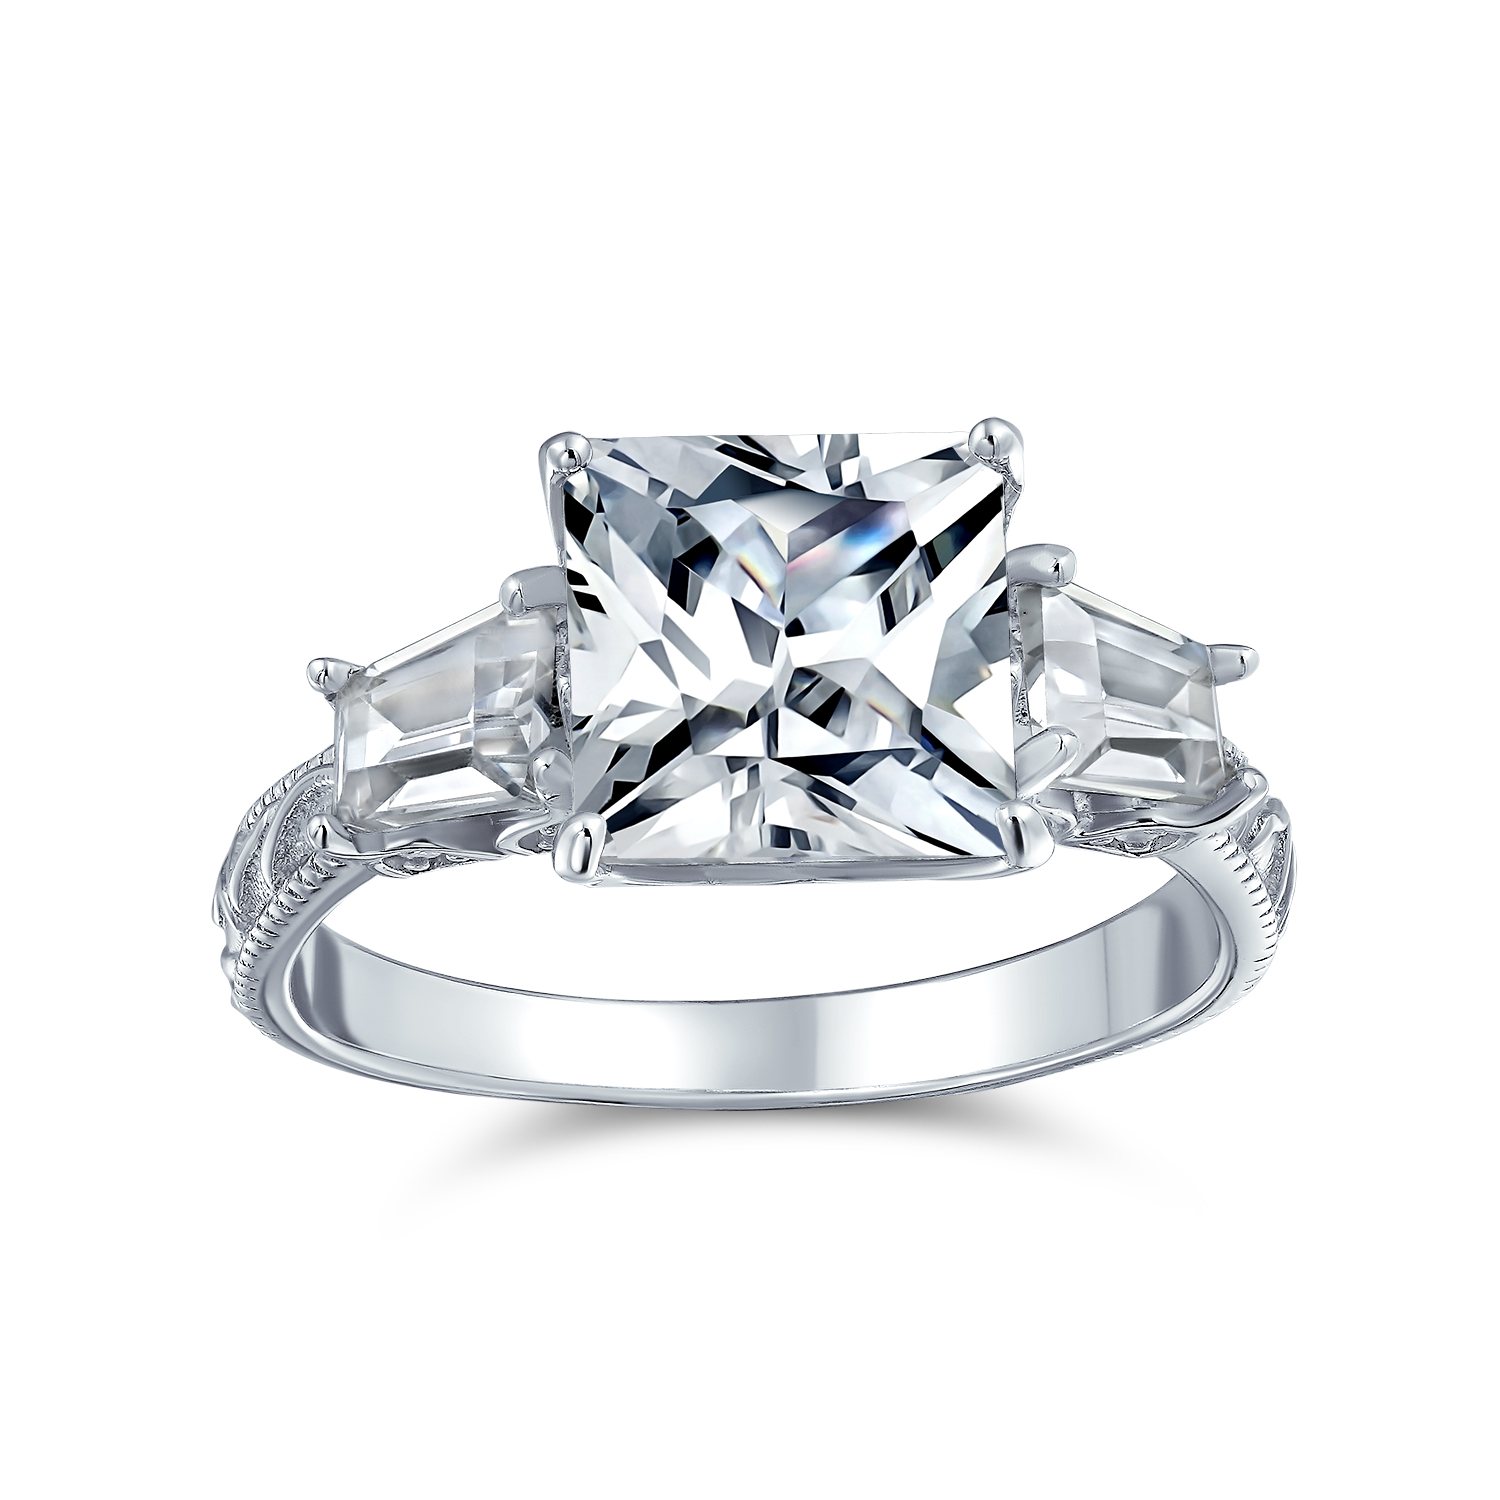 Round Cut Solitaire CZ 925 Sterling Silver Engagement Ring White Brilliant CZ